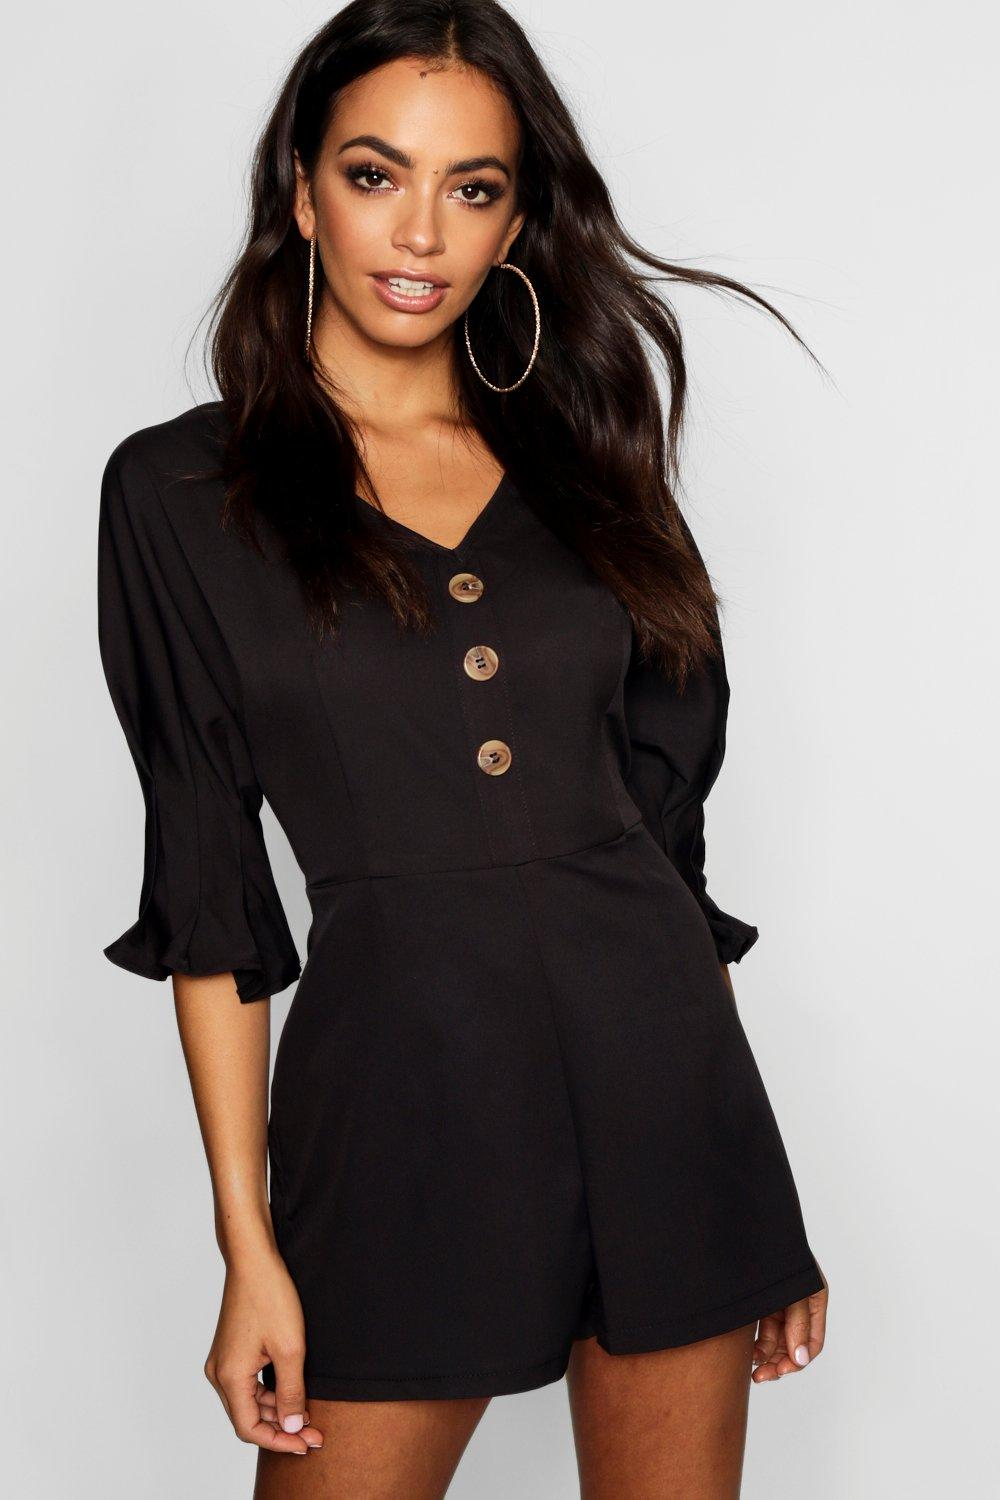 Balloon Tea Playsuit Horn Sleeve Button black Ow5xw1qH